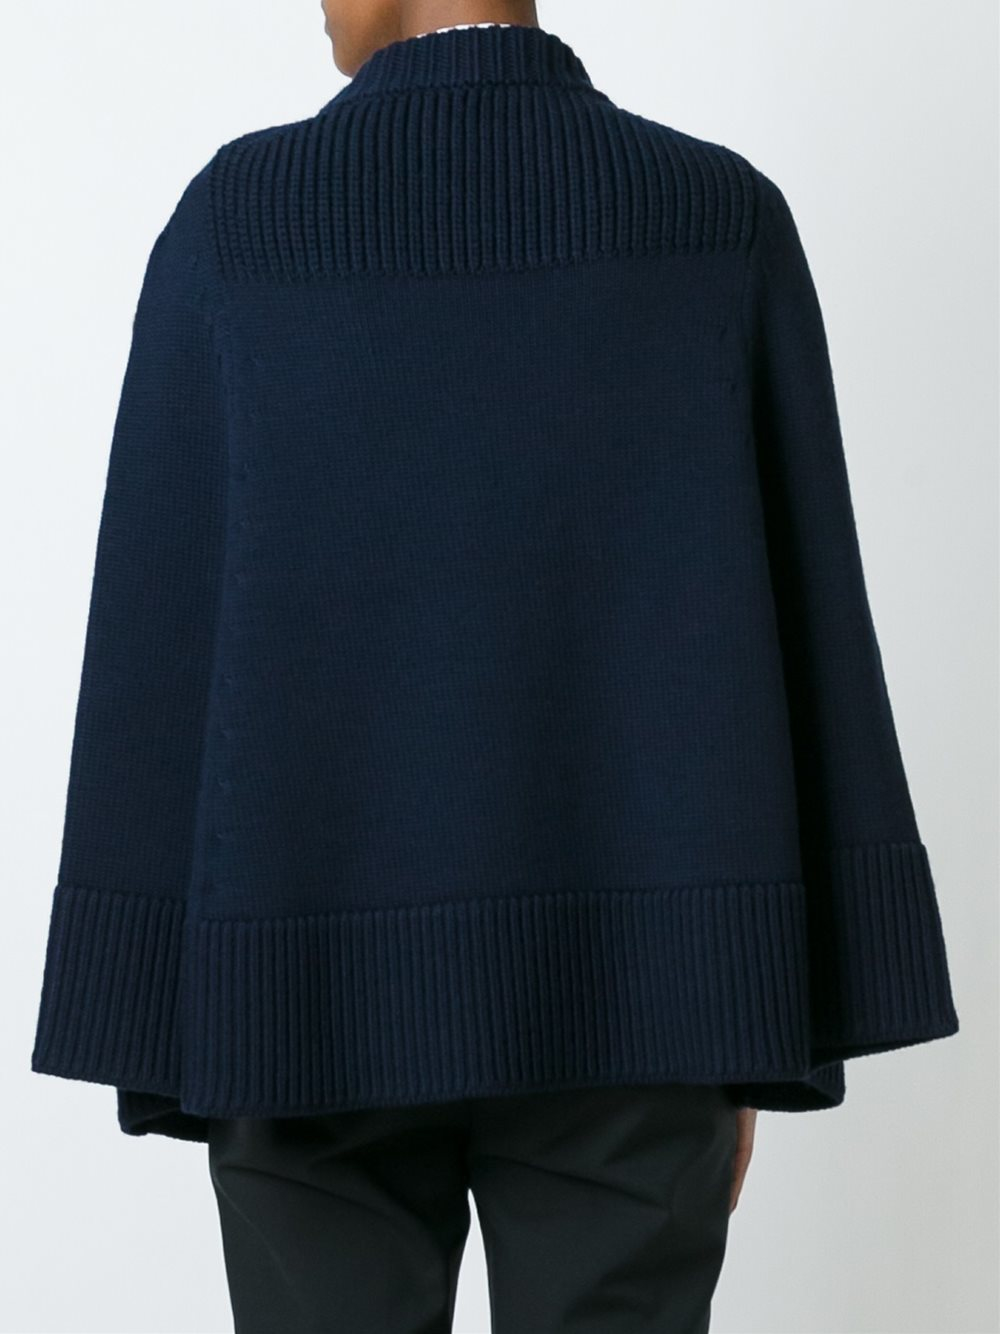 Cape Jumper Knitting Pattern : Moncler Cable Knit Cape Jumper in Blue Lyst